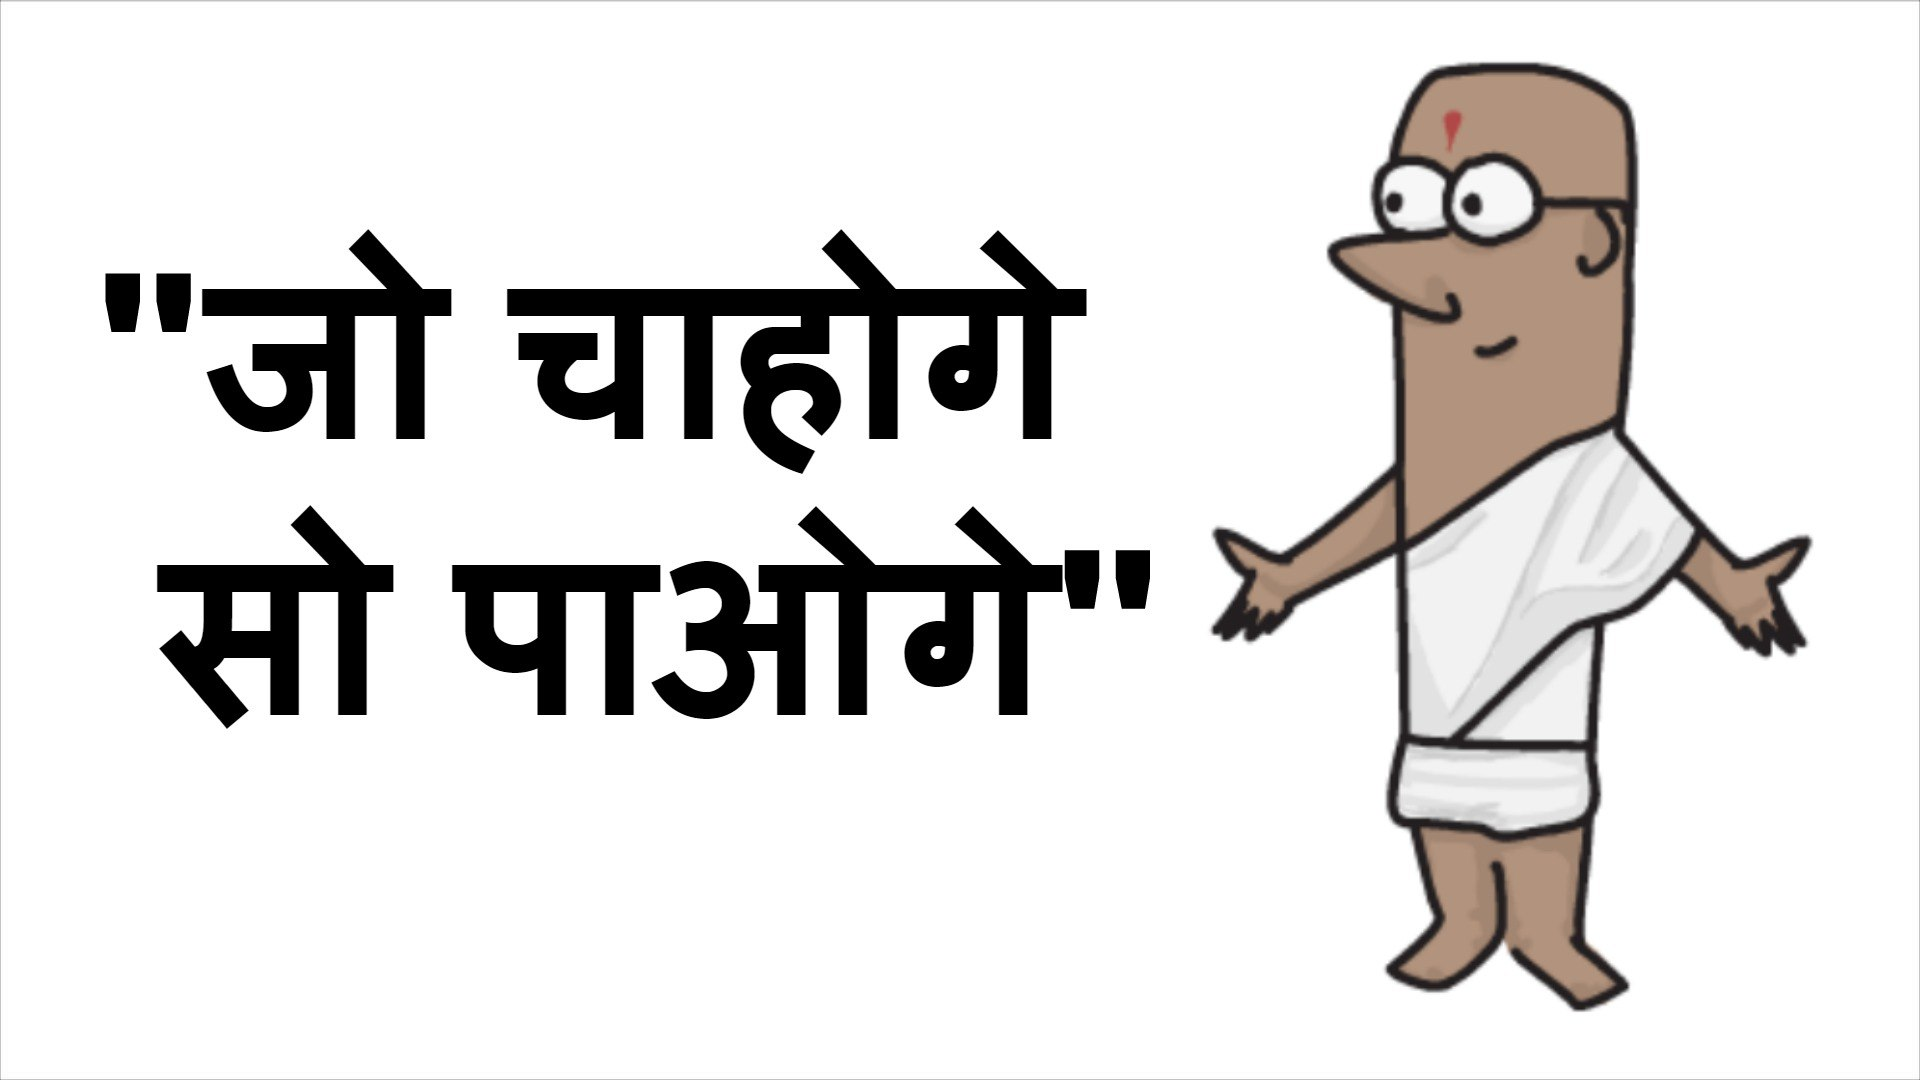 जो चाहोगे सो पाओगे - Animated Motivational Stories for Students in Hindi - Motivational Story - Moti